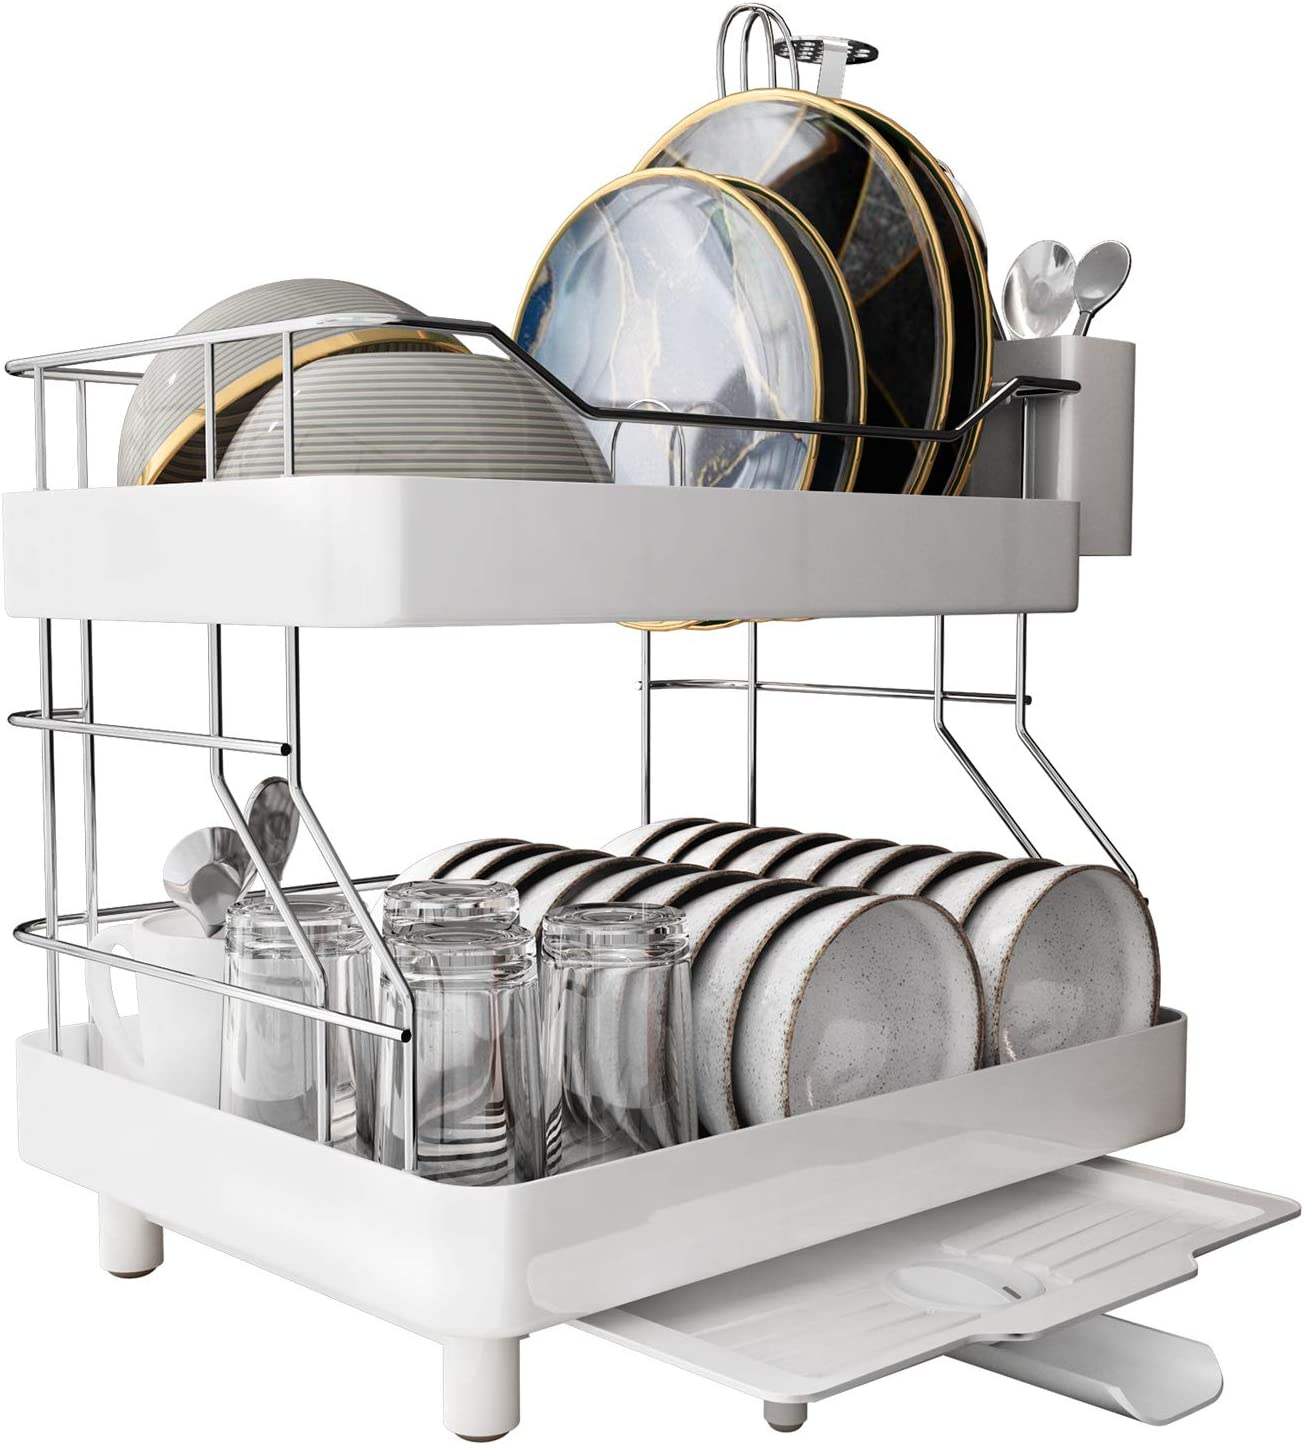 MAJALiS Dish Drying Rack, 2 Tier Stainless Steel Rustproof Dish Rack Drainer, Large Capacity Sink Side Dish Rack with Removable Utensil Holder & Adjustable Drain Spout, Suitable for Large Family